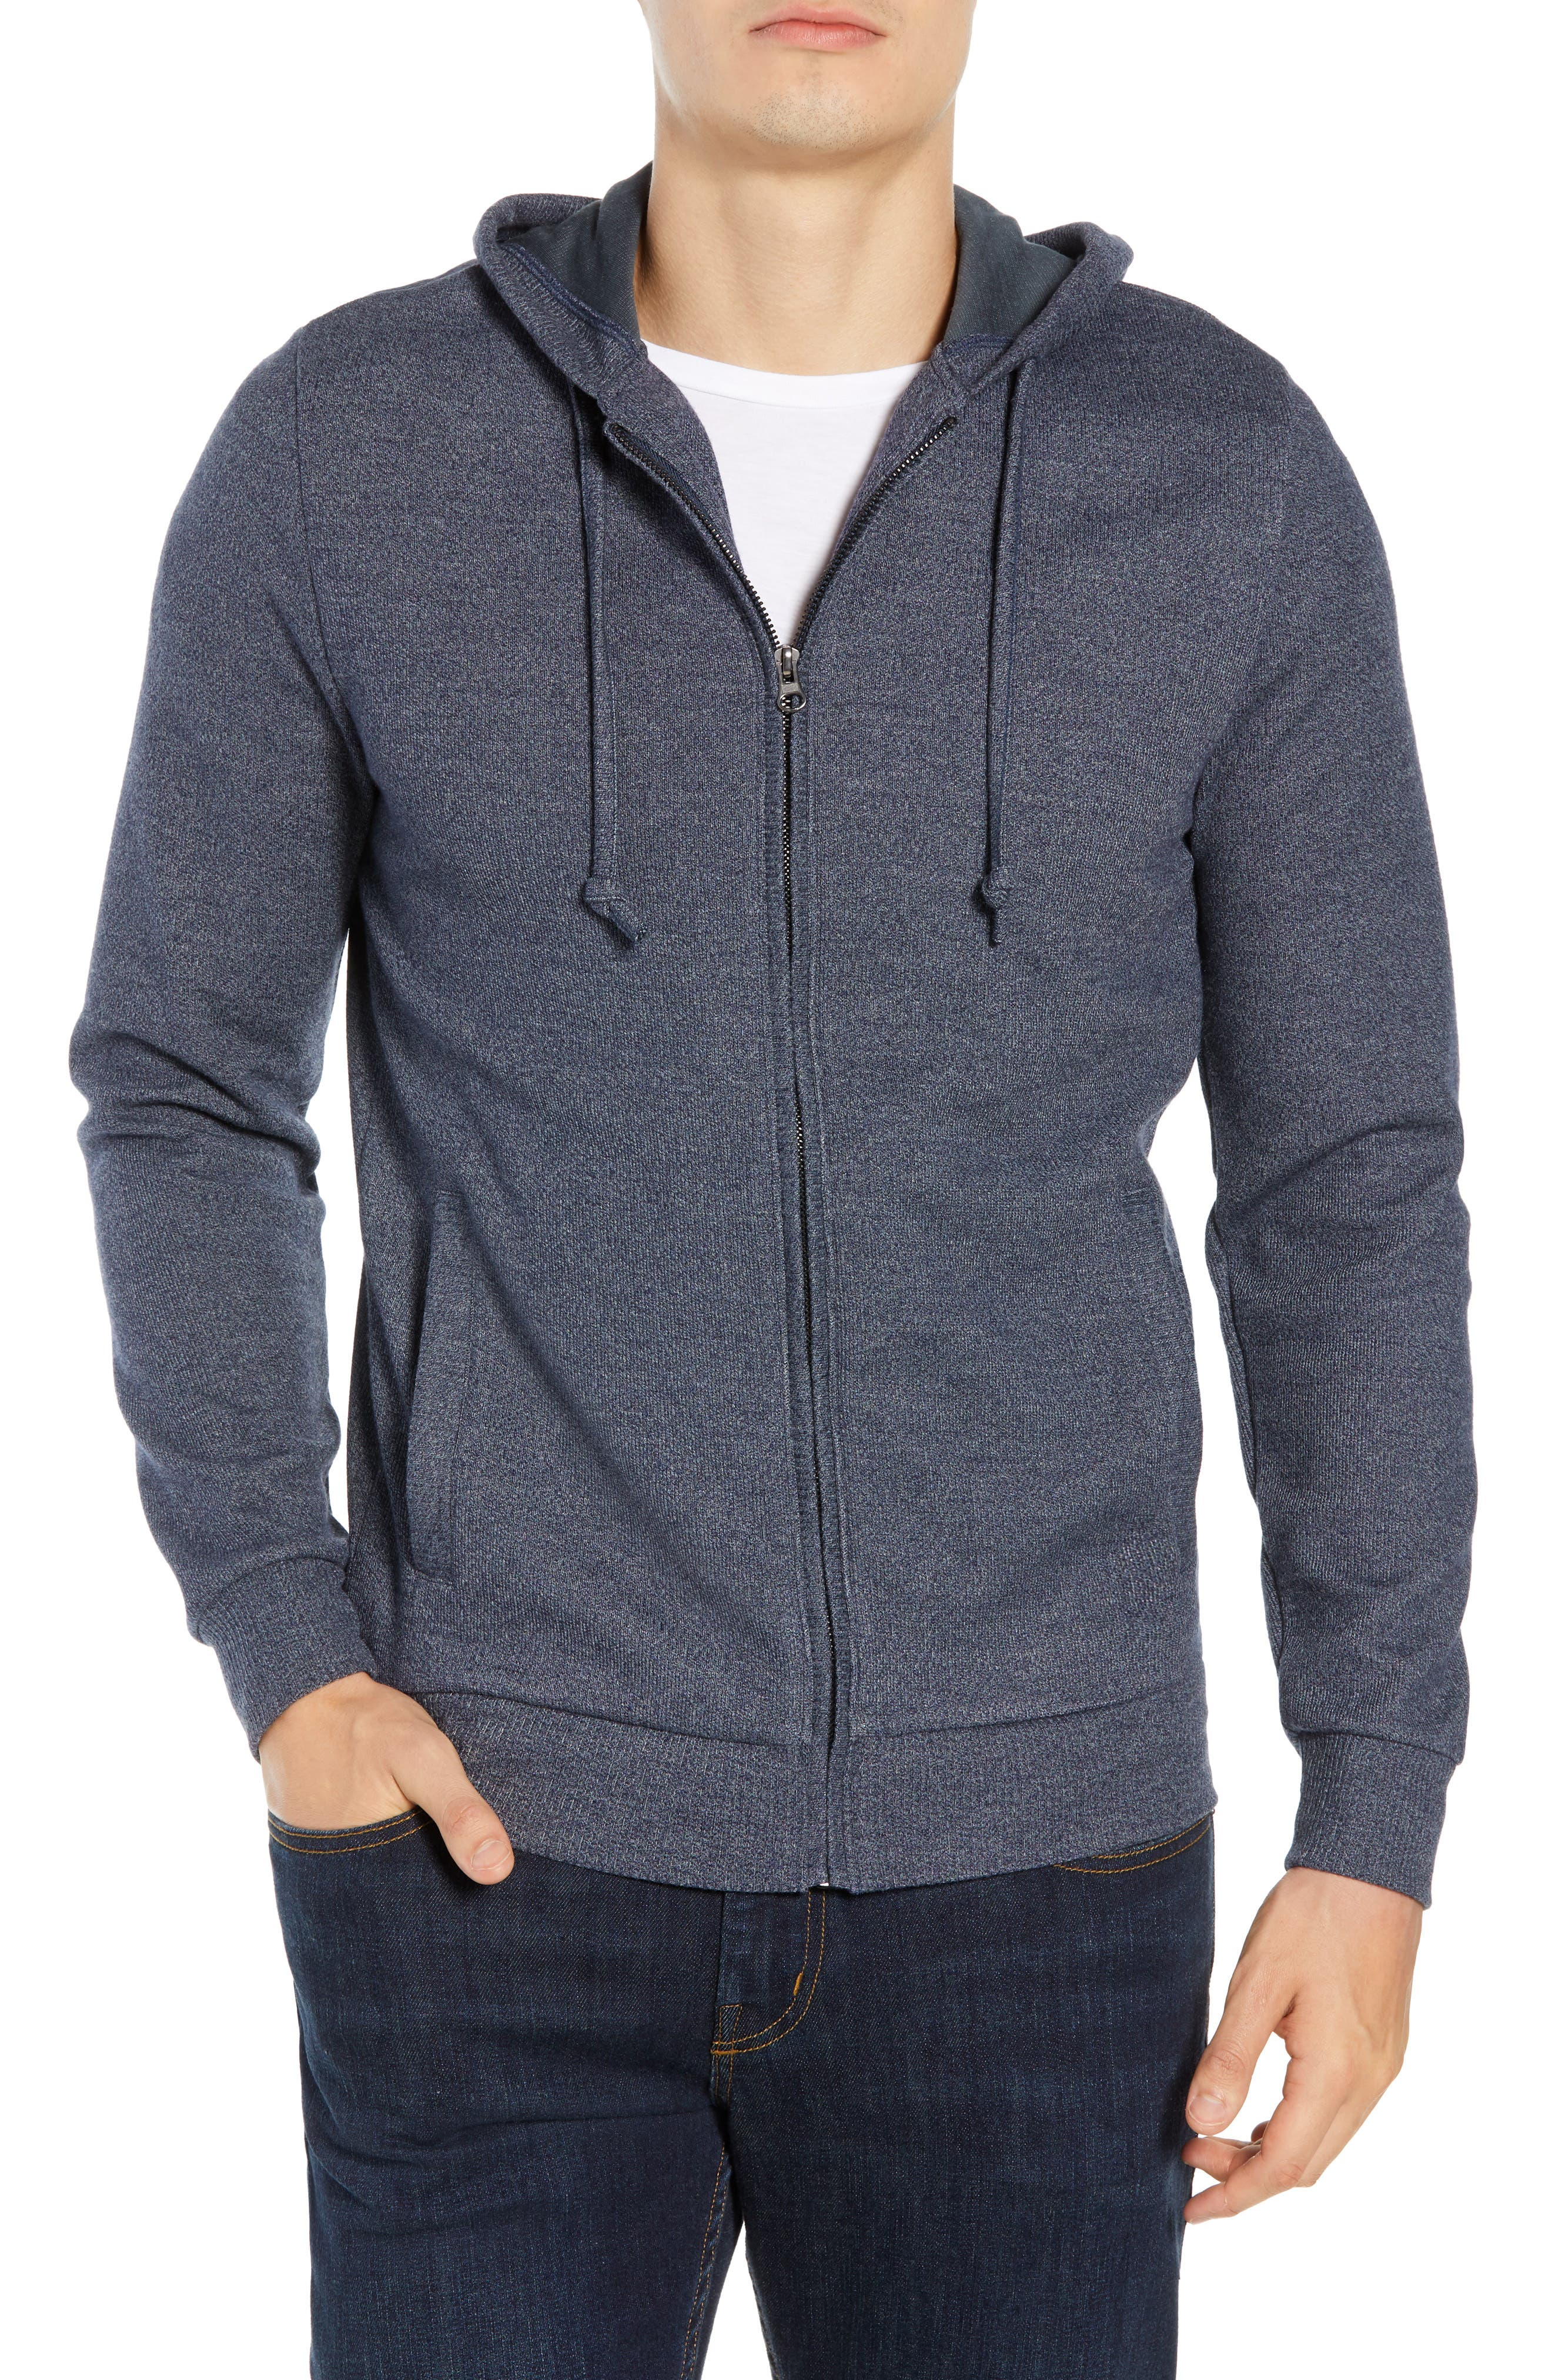 TRAVIS MATHEW Snare Zip Front Hooded Cardigan, Main, color, 400